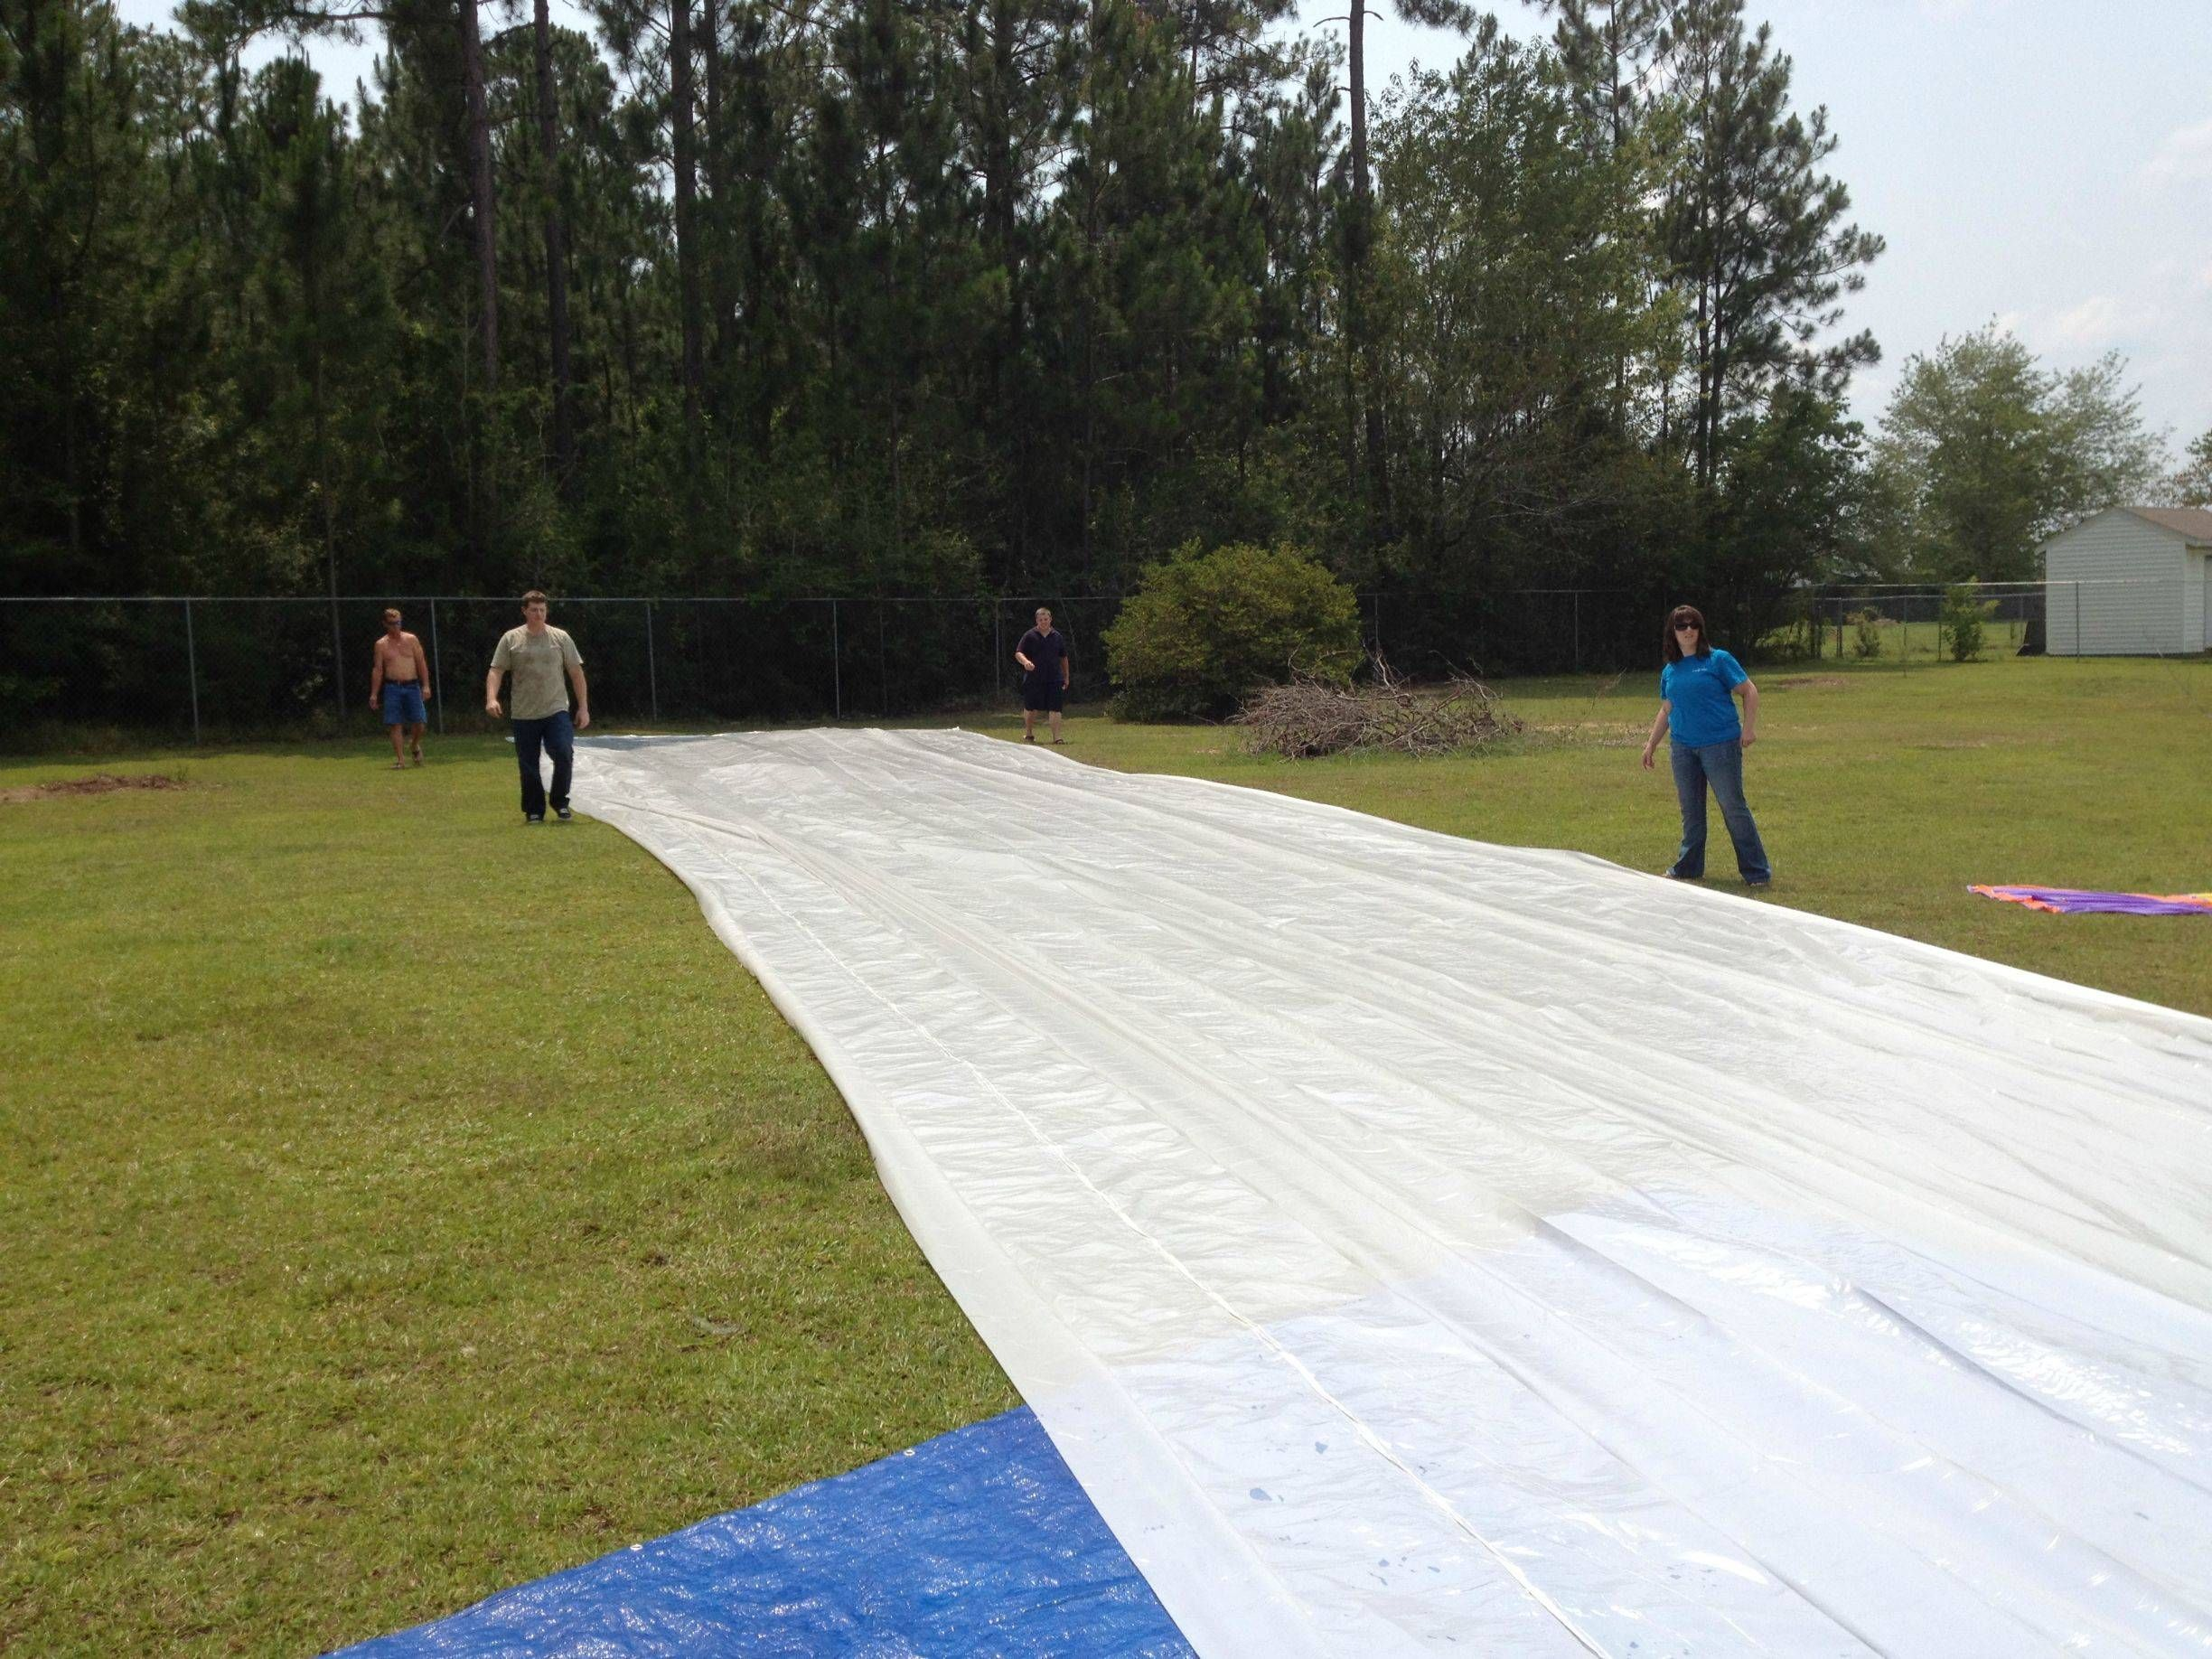 make a giant slip n slide - my dad would make one of these ...